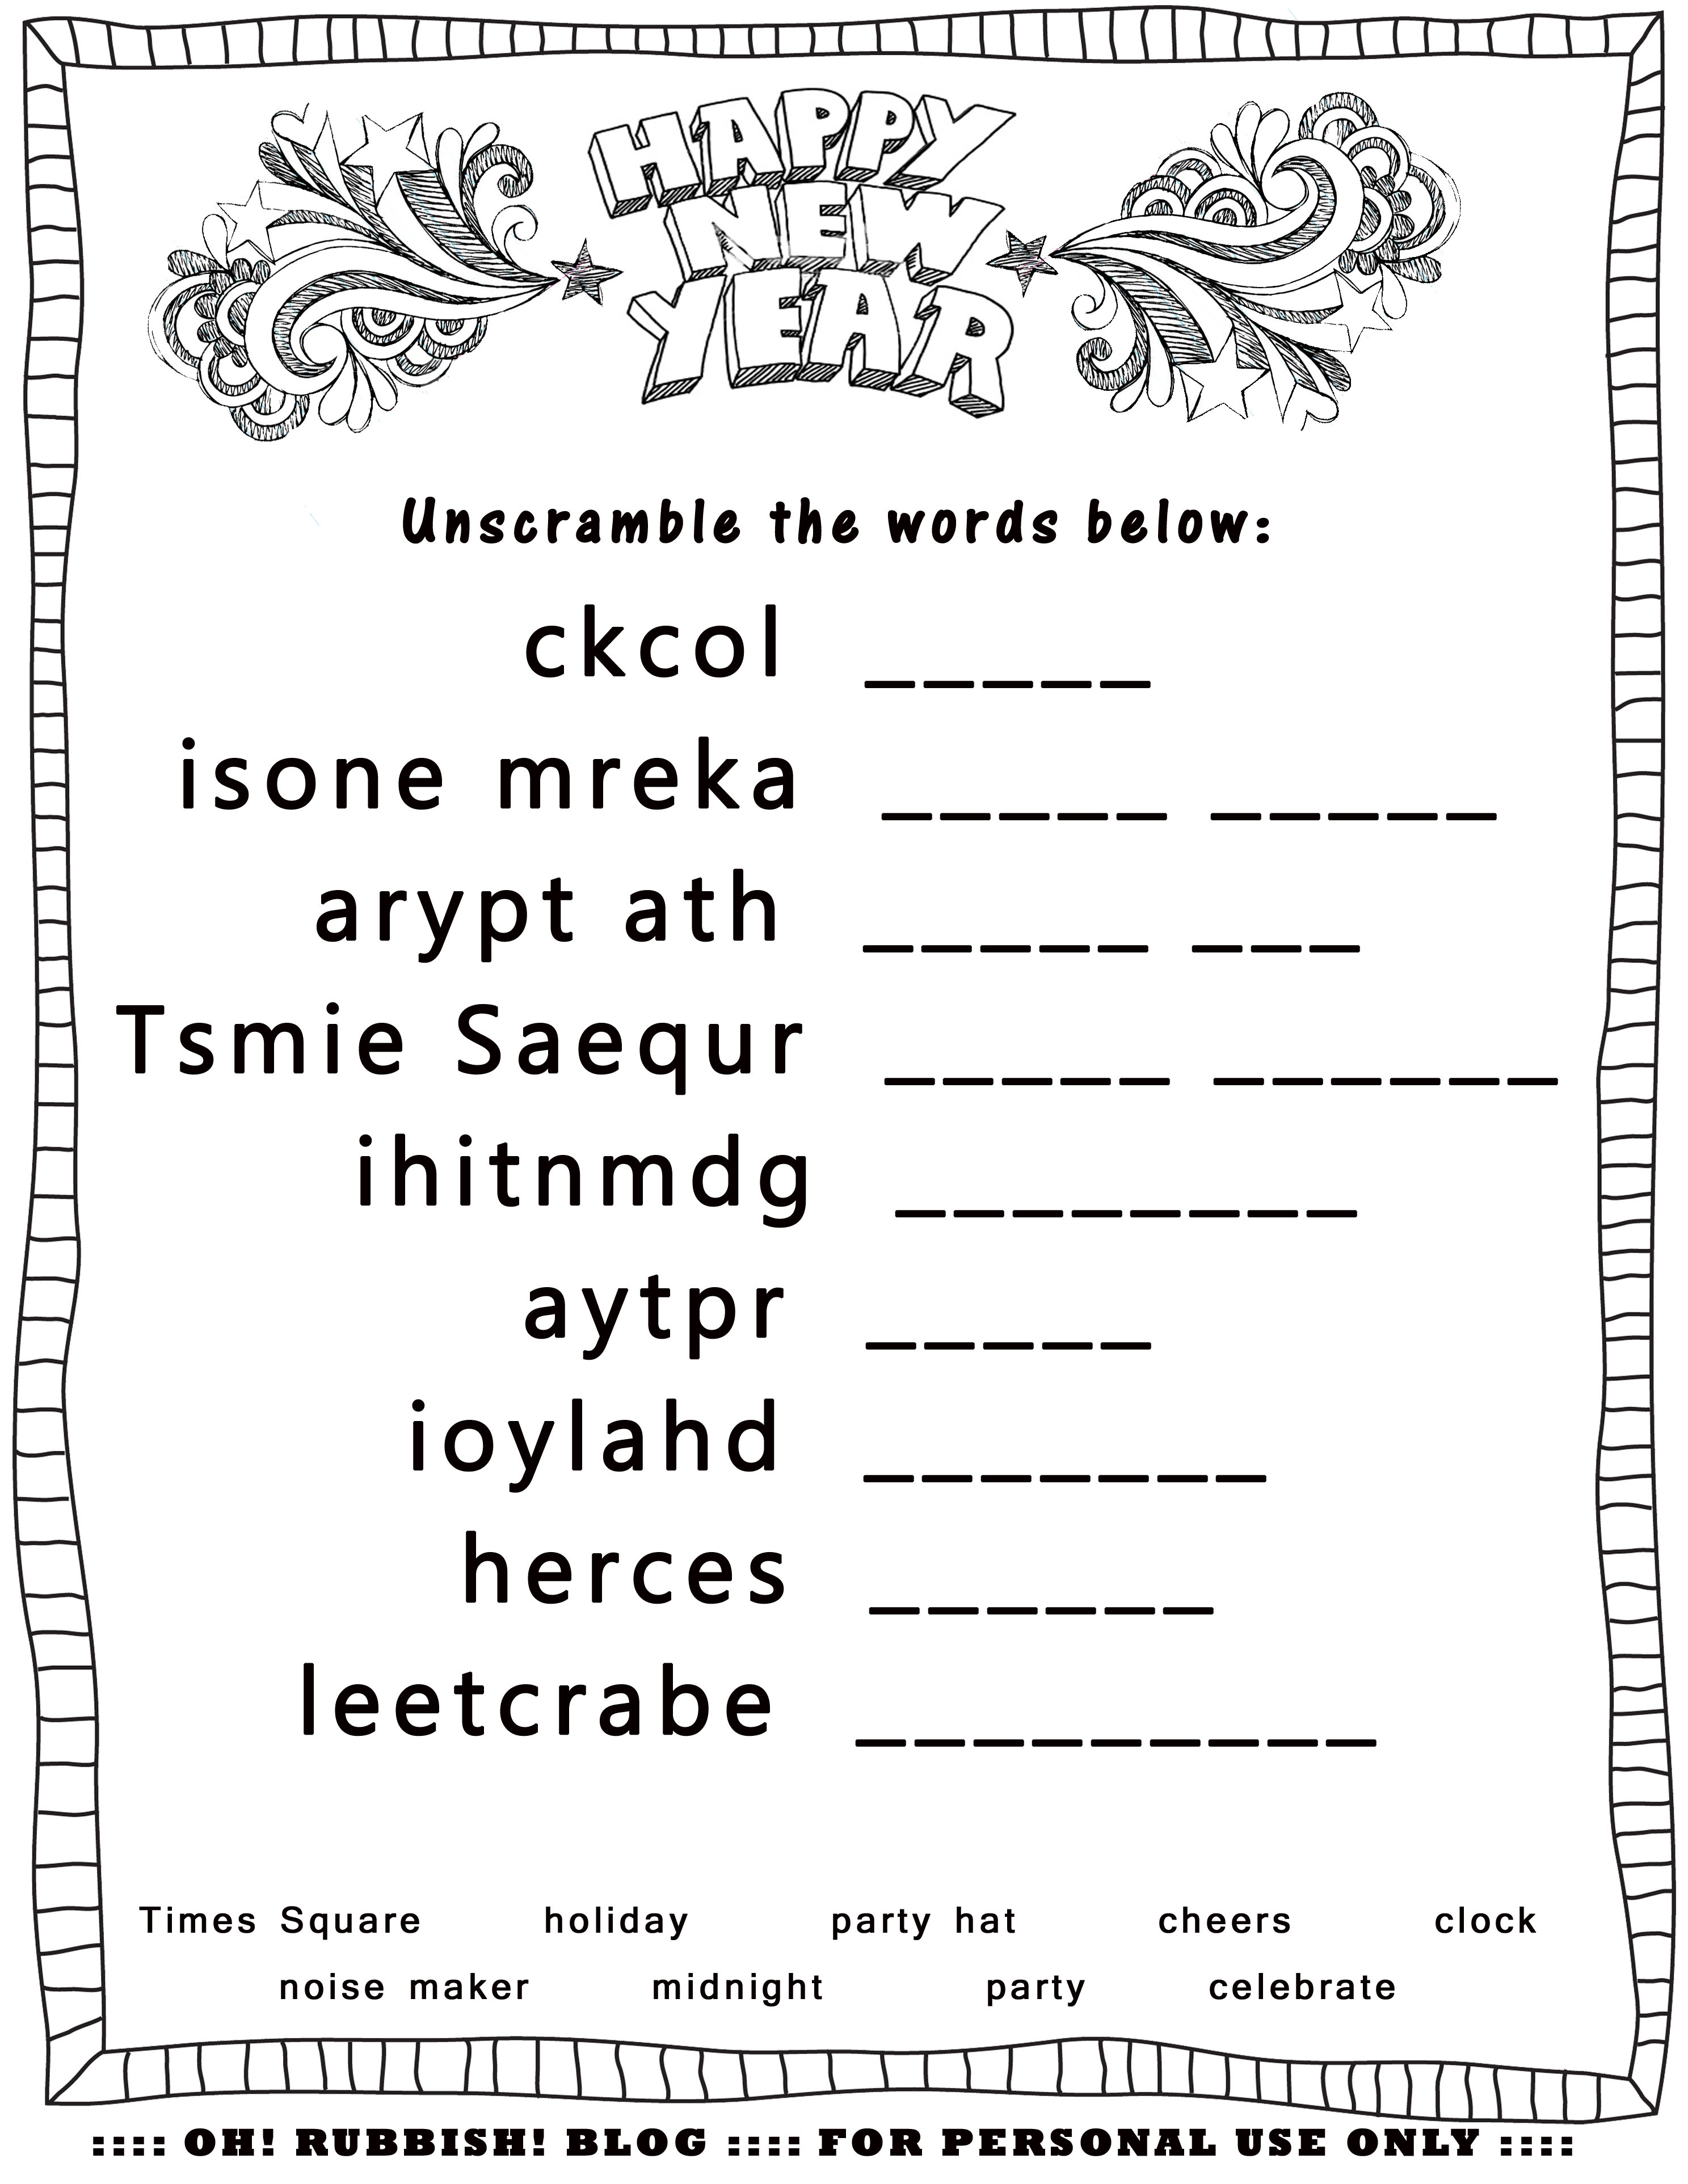 New Year's Printable Activities :: Entertain Your Kids With 4 New - Free Printable Unscramble Puzzles